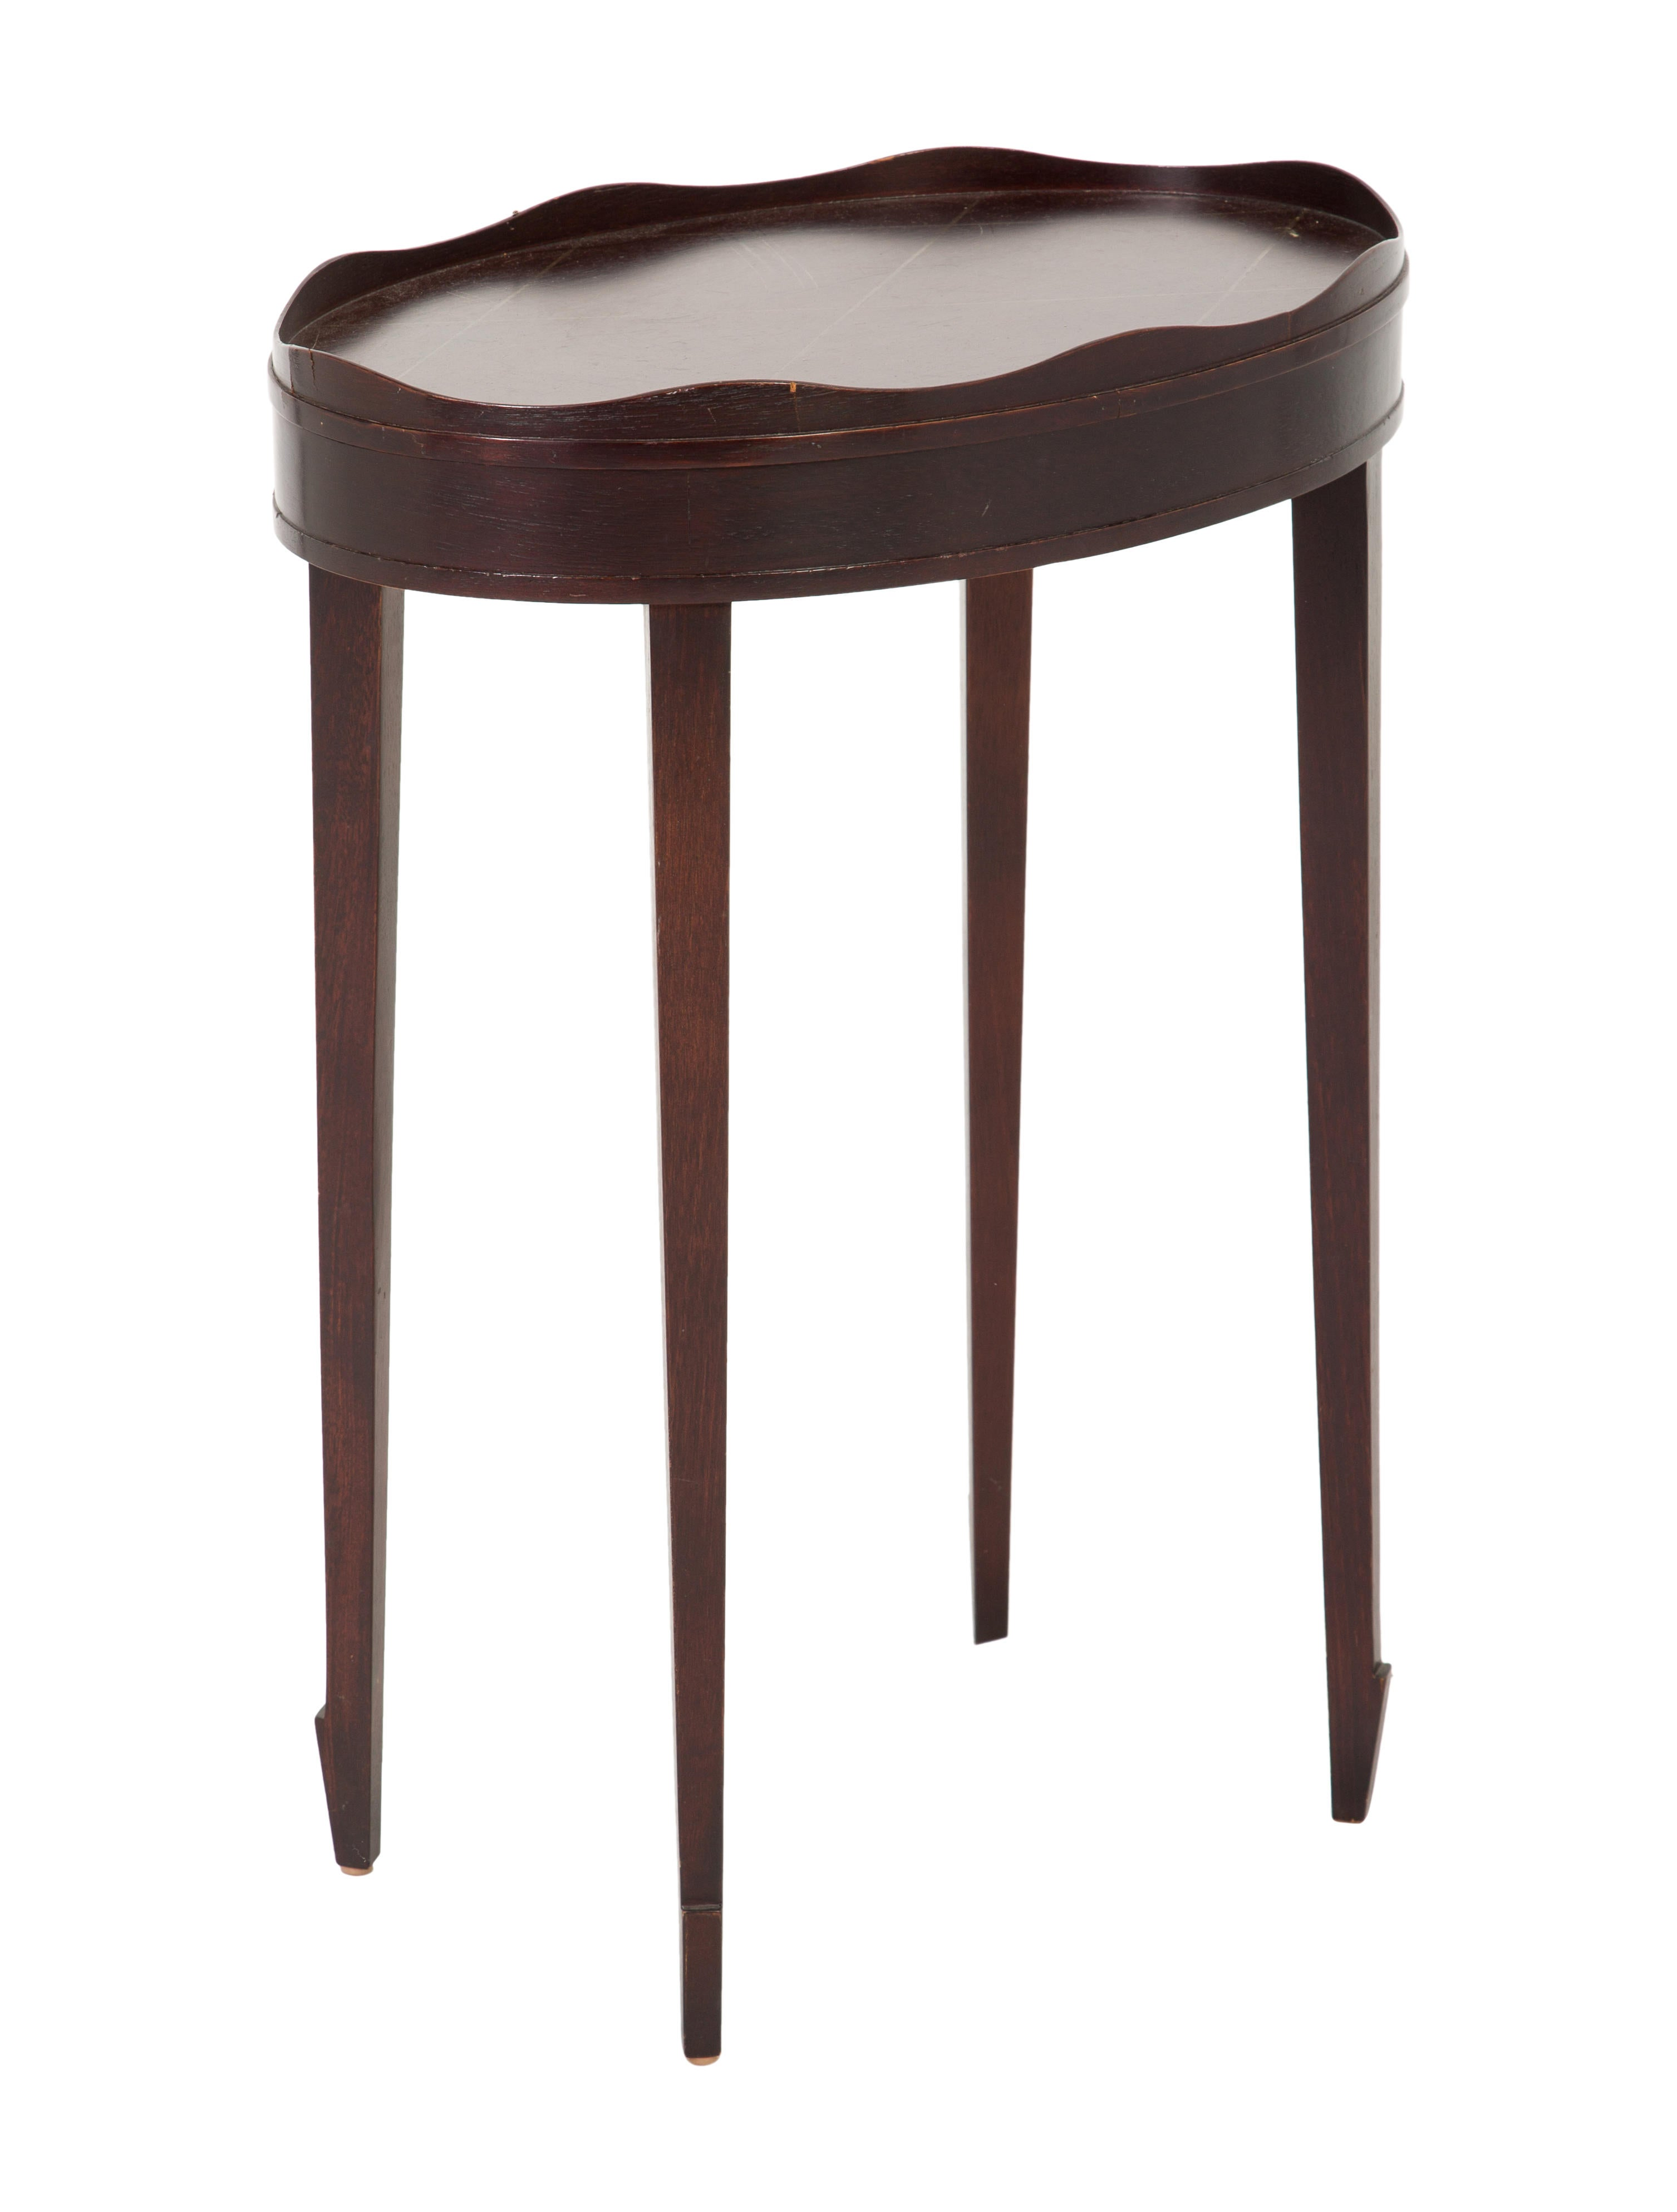 Barbara Barry Collection Side Table